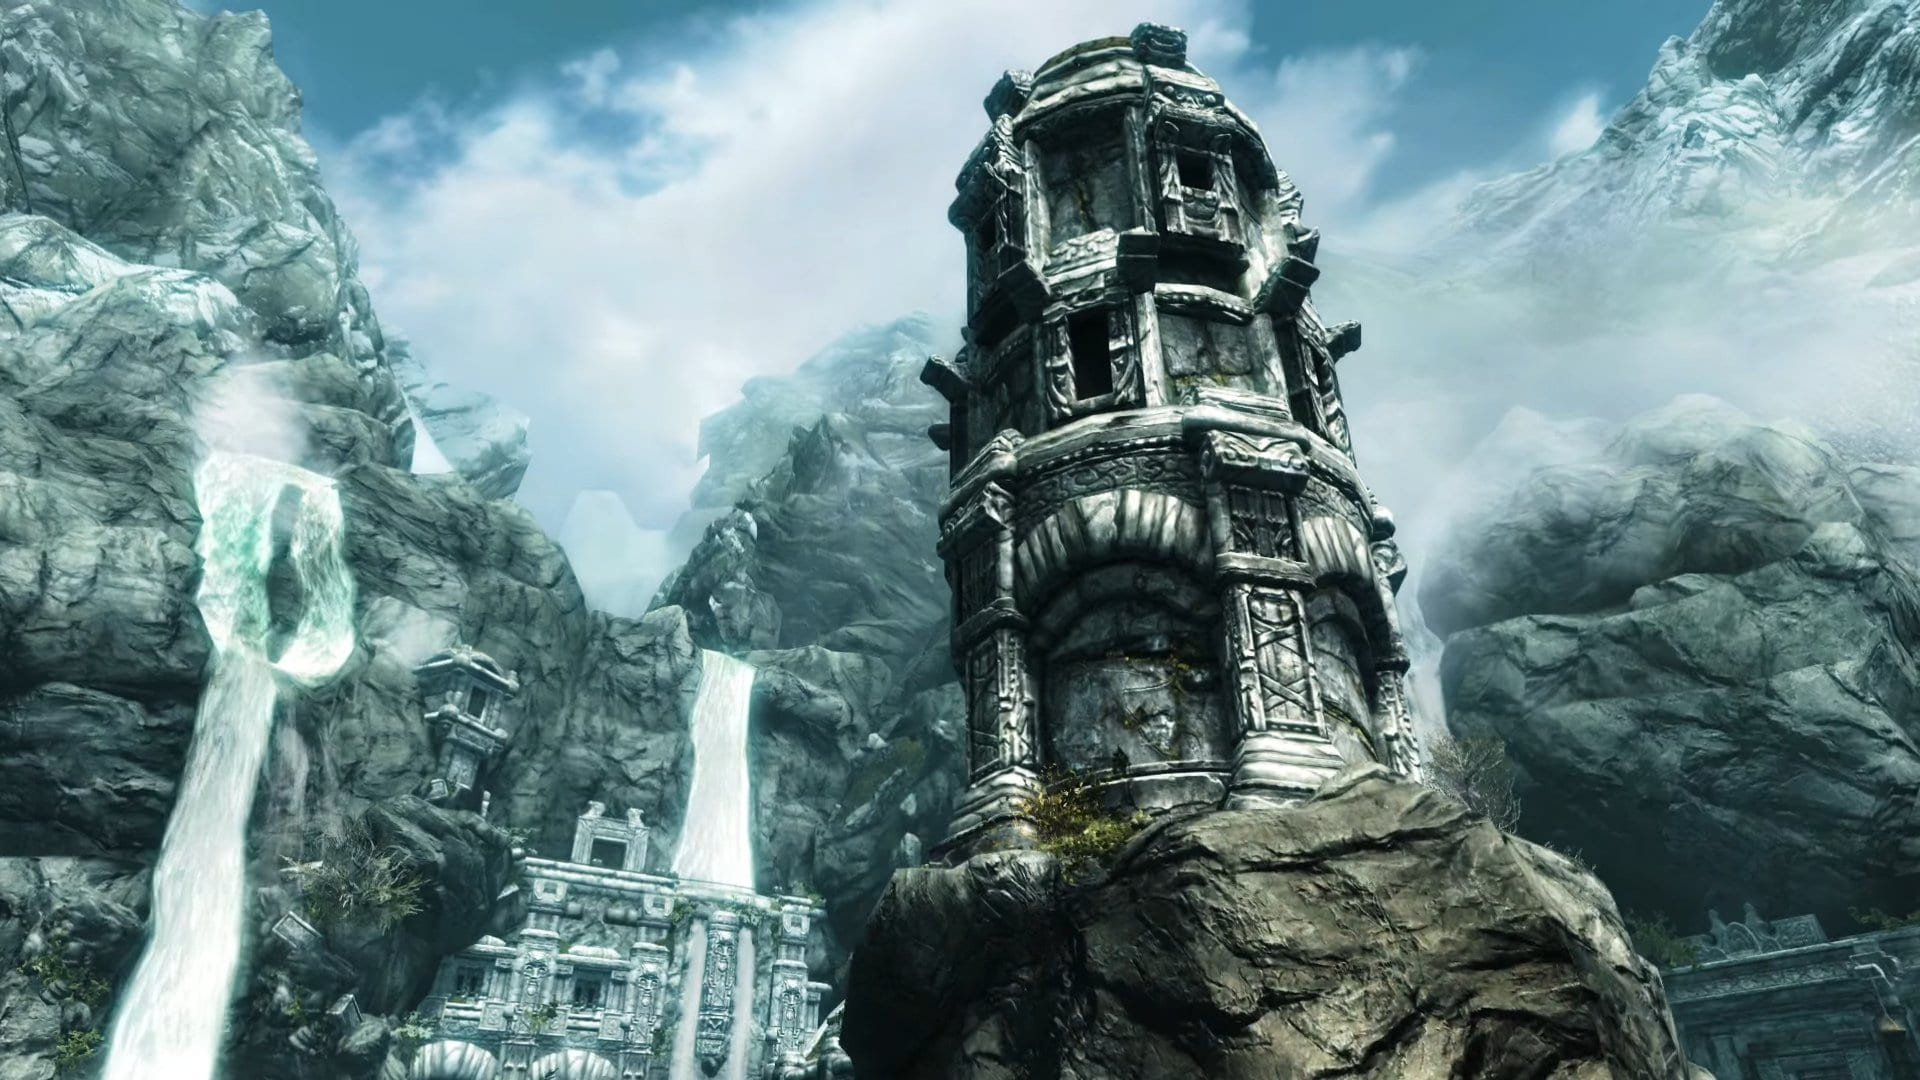 Skyrim Tower